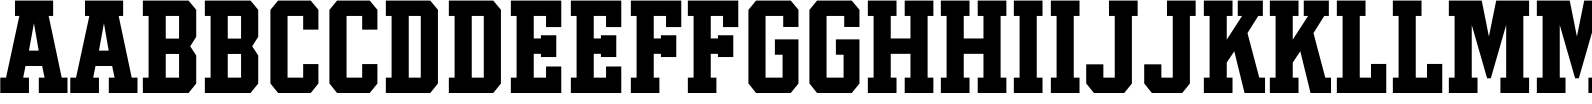 Player Pro Condensed Bold